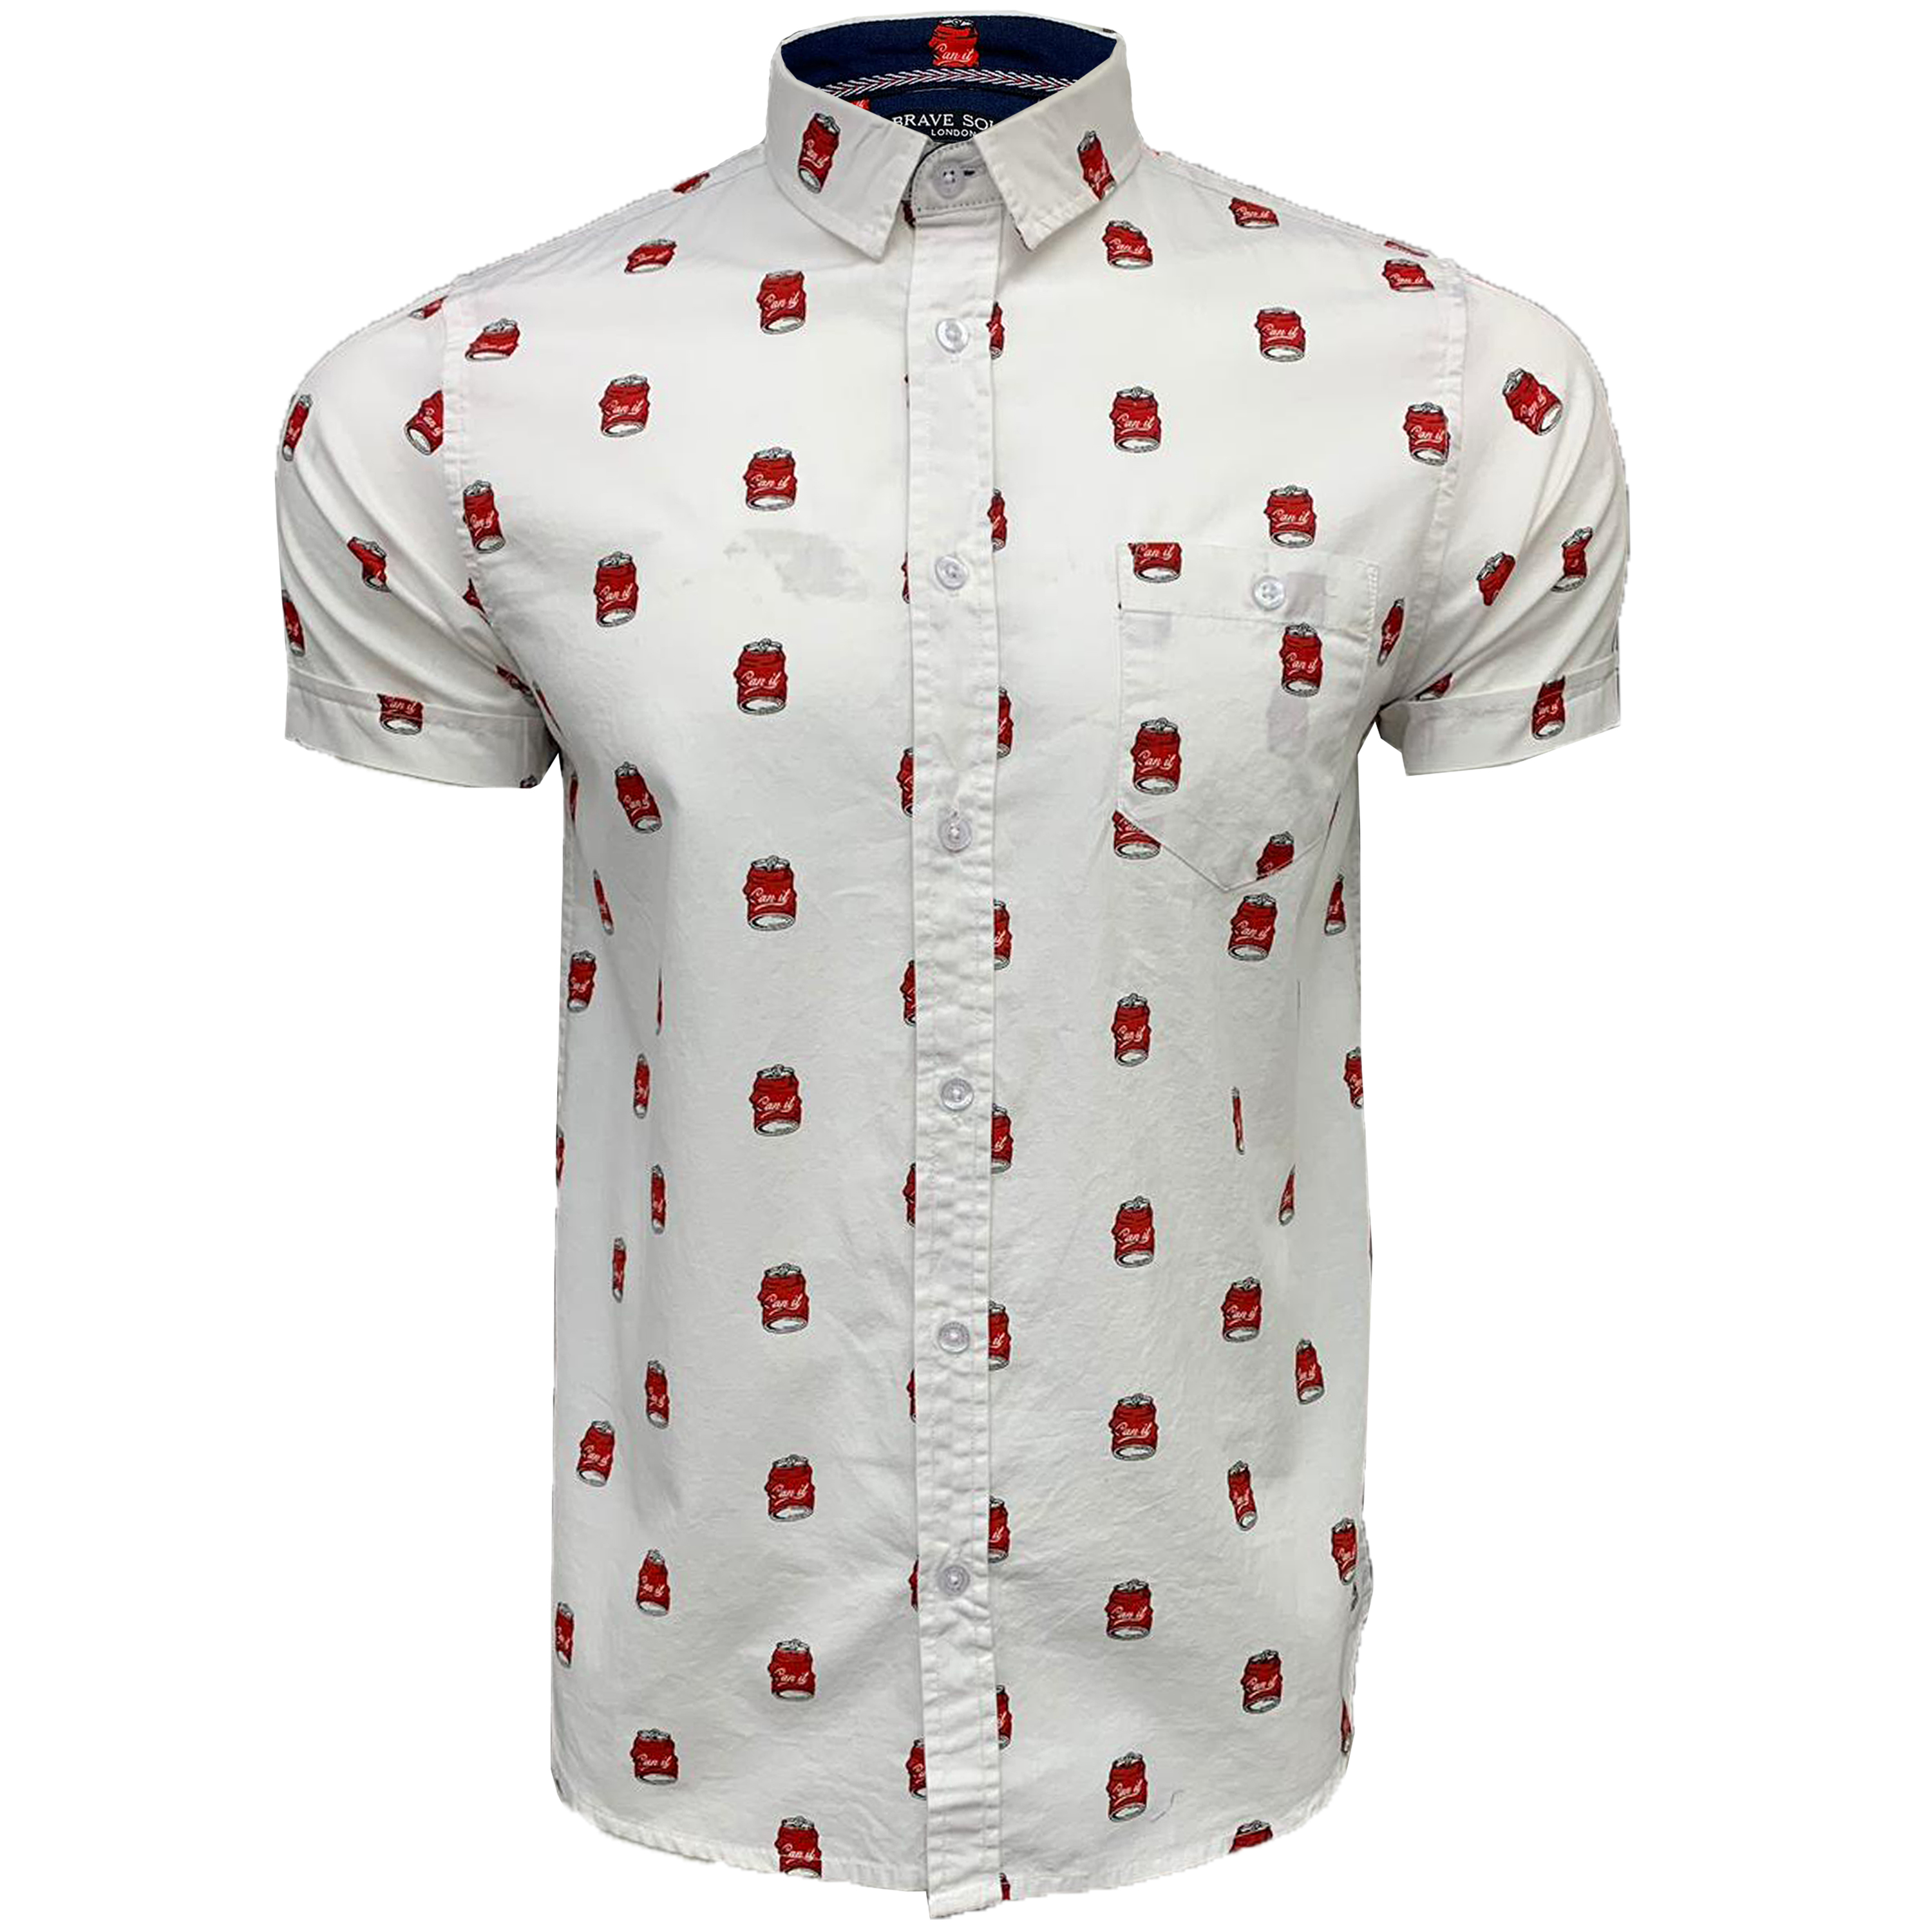 Mens-Cotton-Shirt-Brave-Soul-Pineapple-Can-Printed-Short-Sleeved-Casual-Summer thumbnail 11